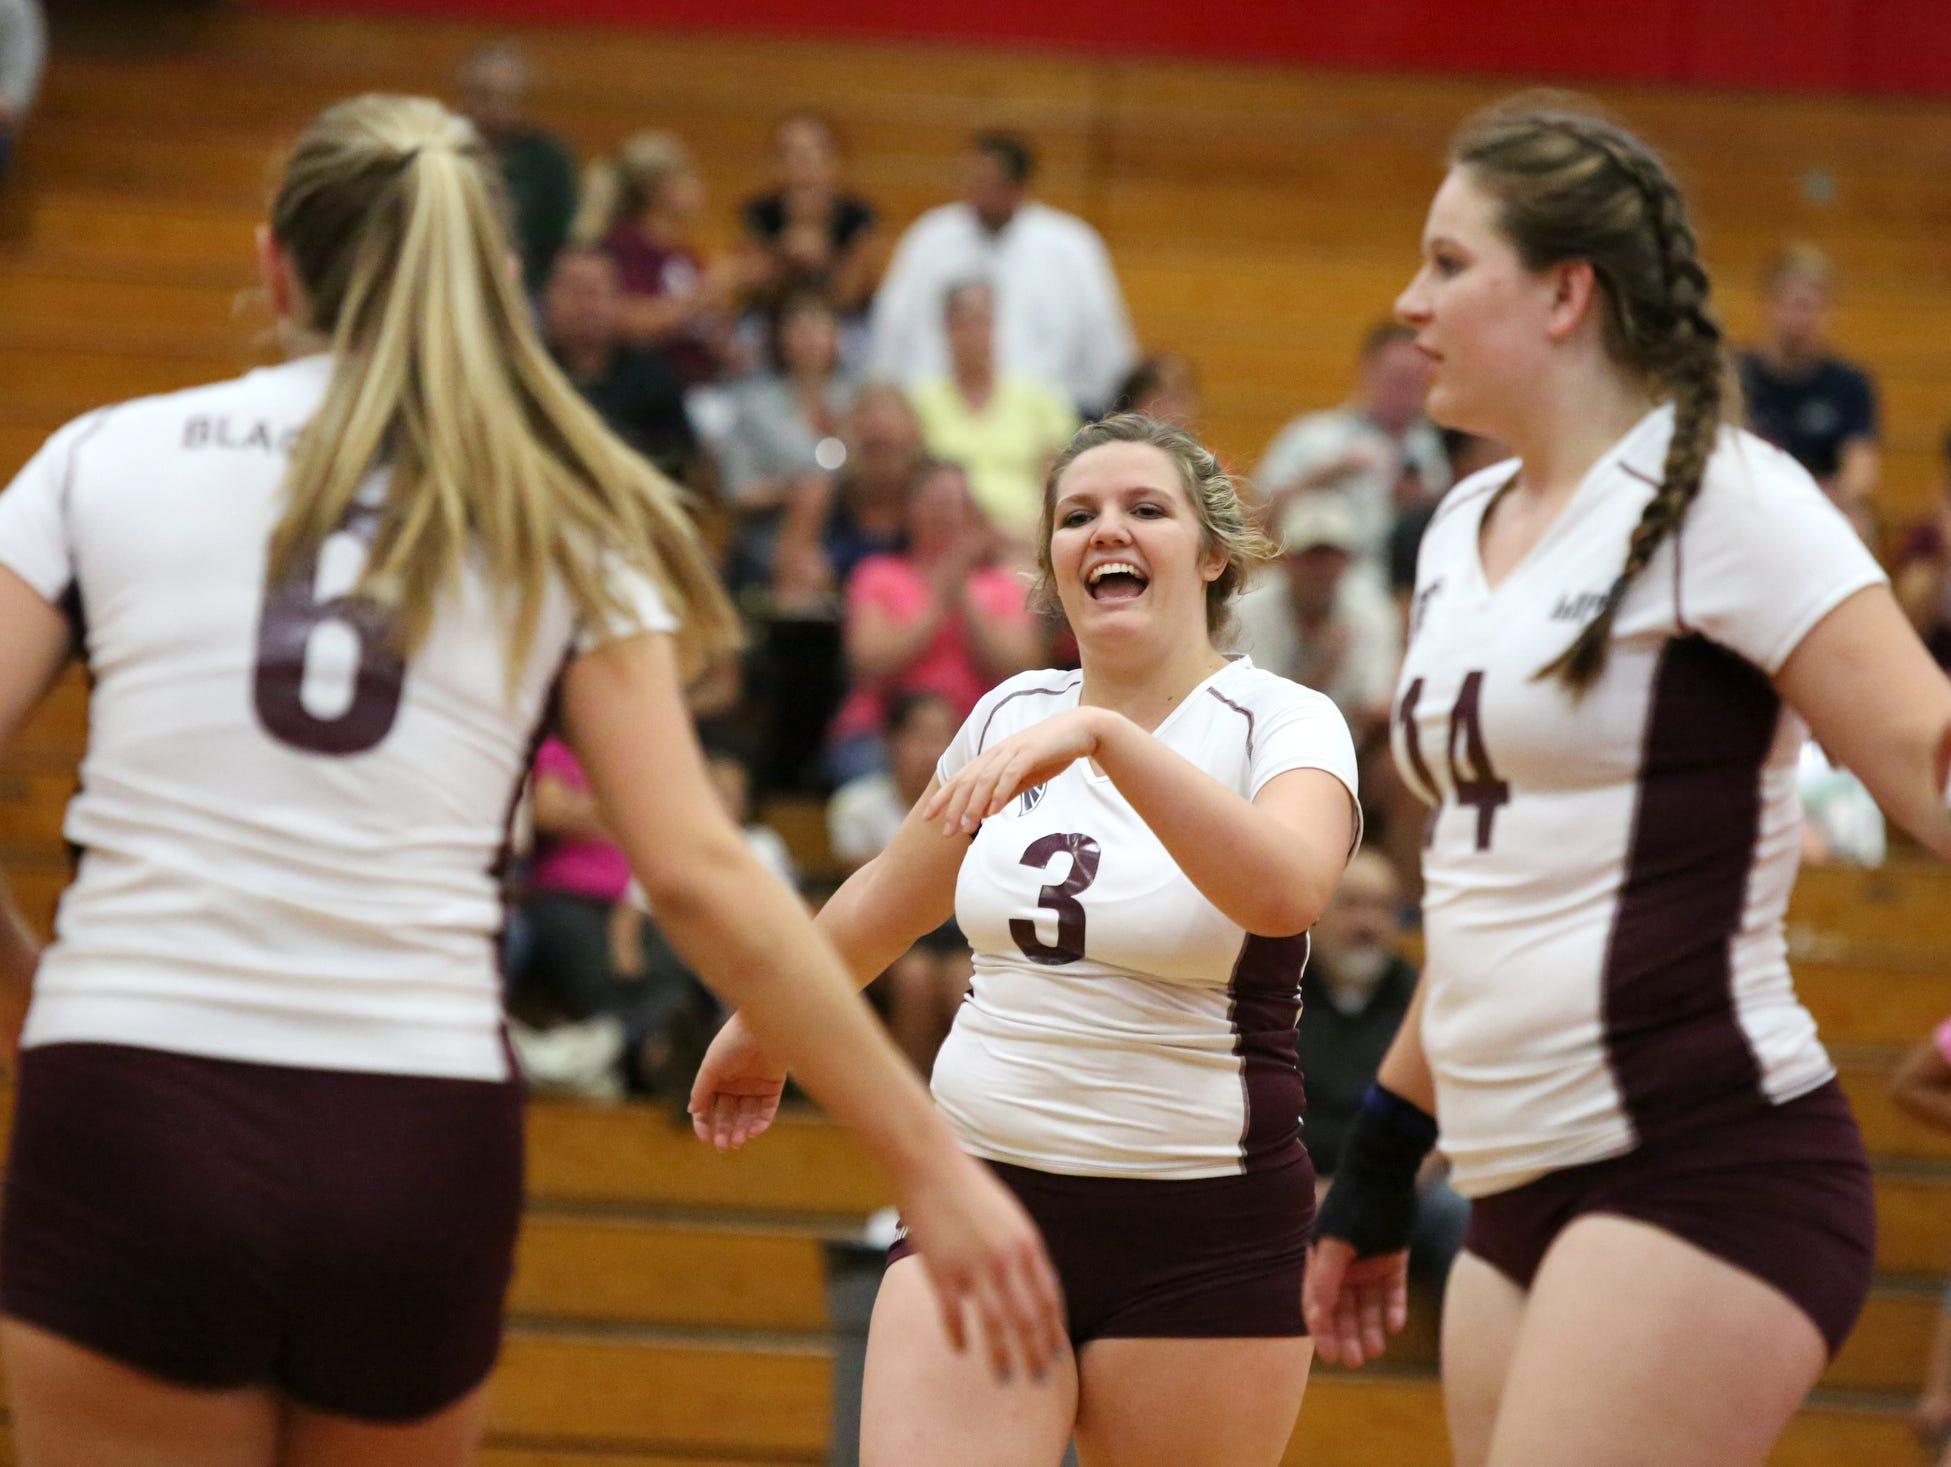 La Quinta's Jolie Samuelson, center, celebrates during the game against Palm Springs High in Palm Springs on Tuesday.